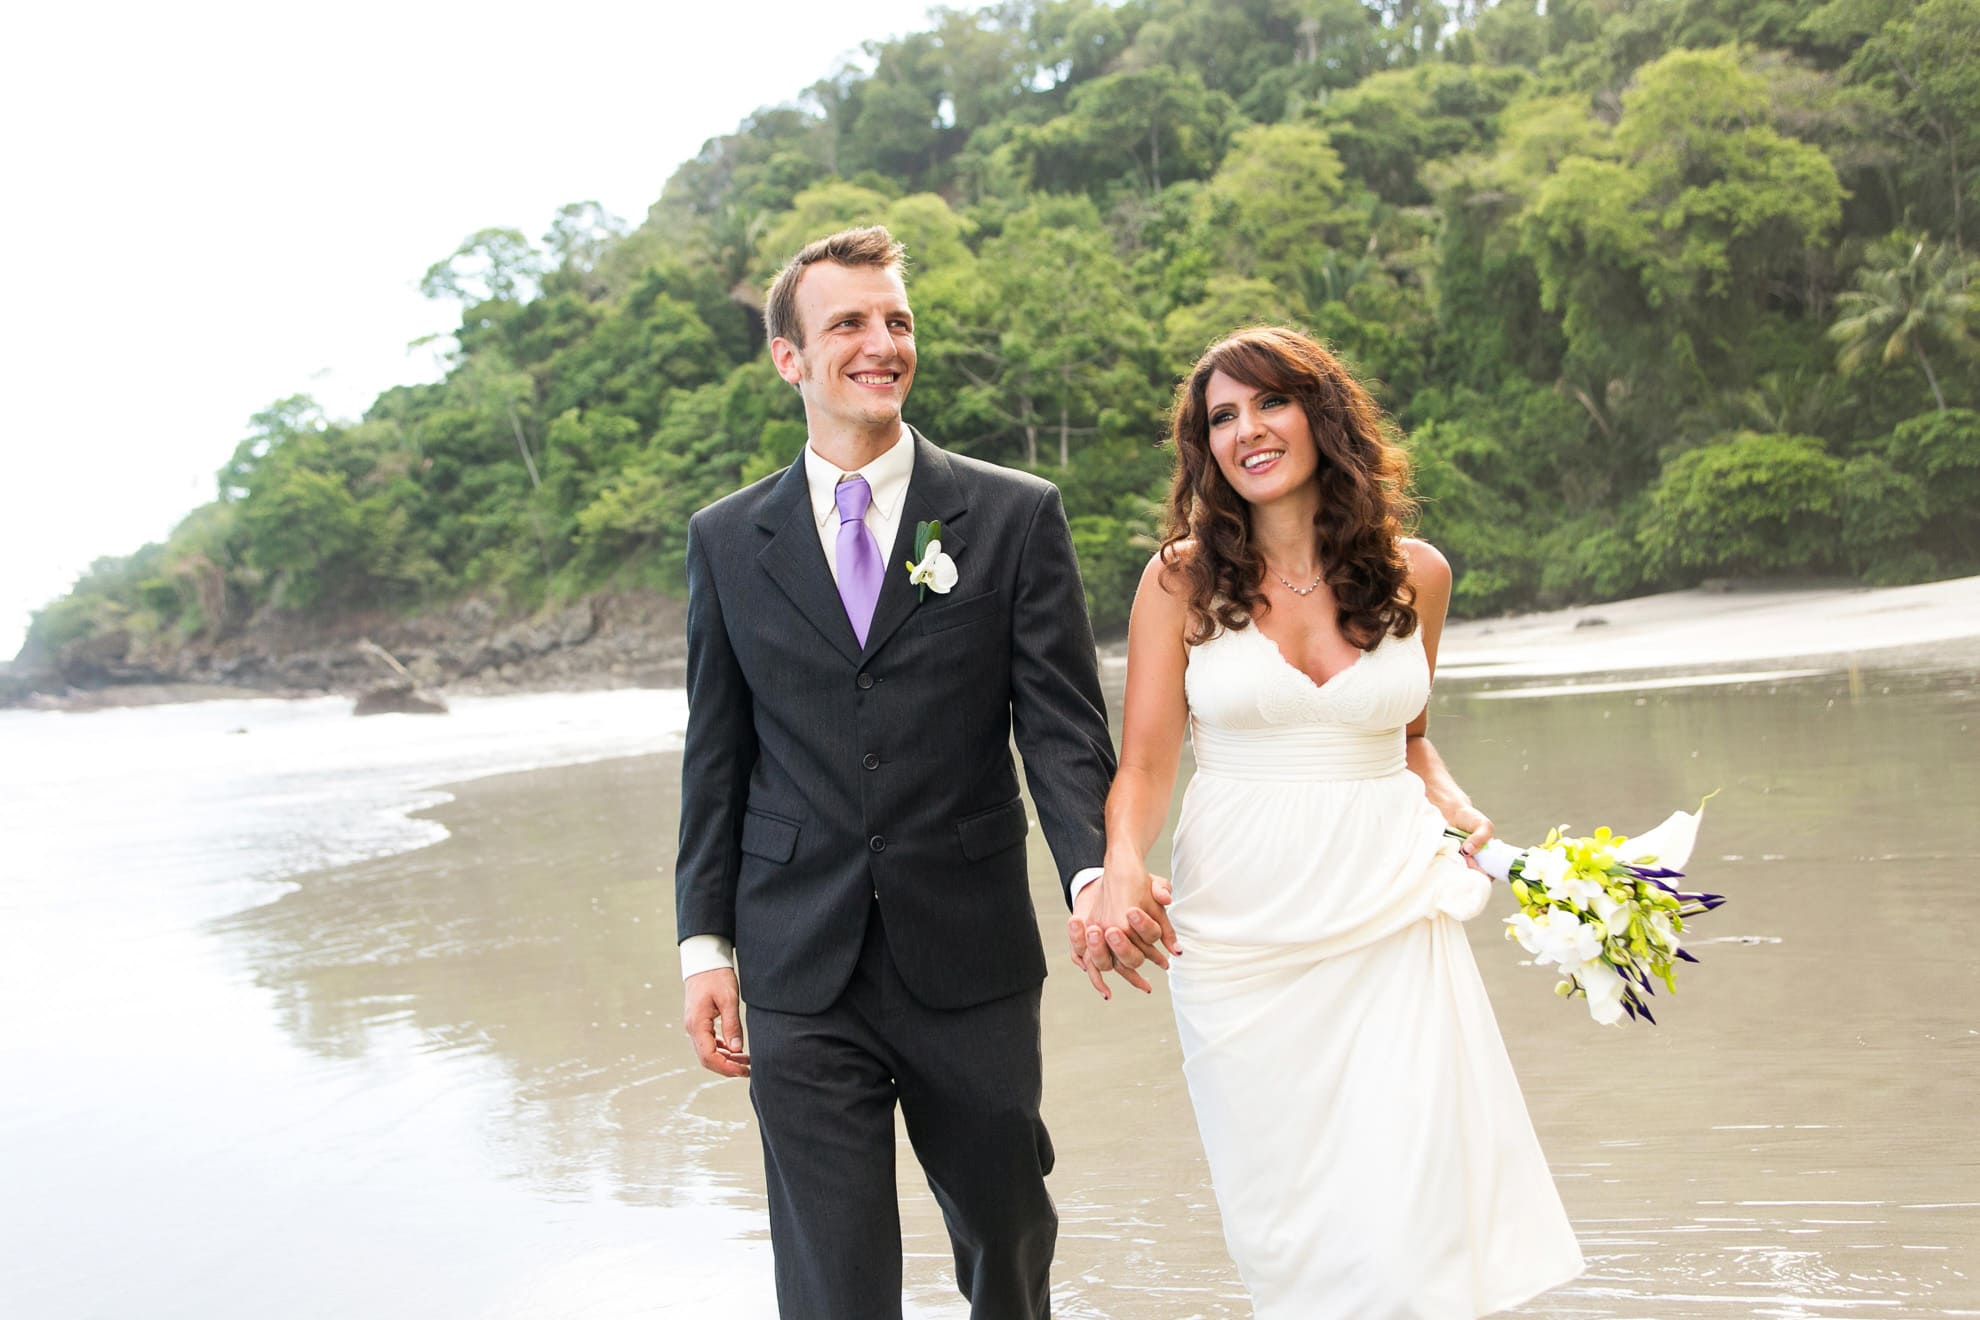 Bride and groom walking on beach after wedding ceremony.